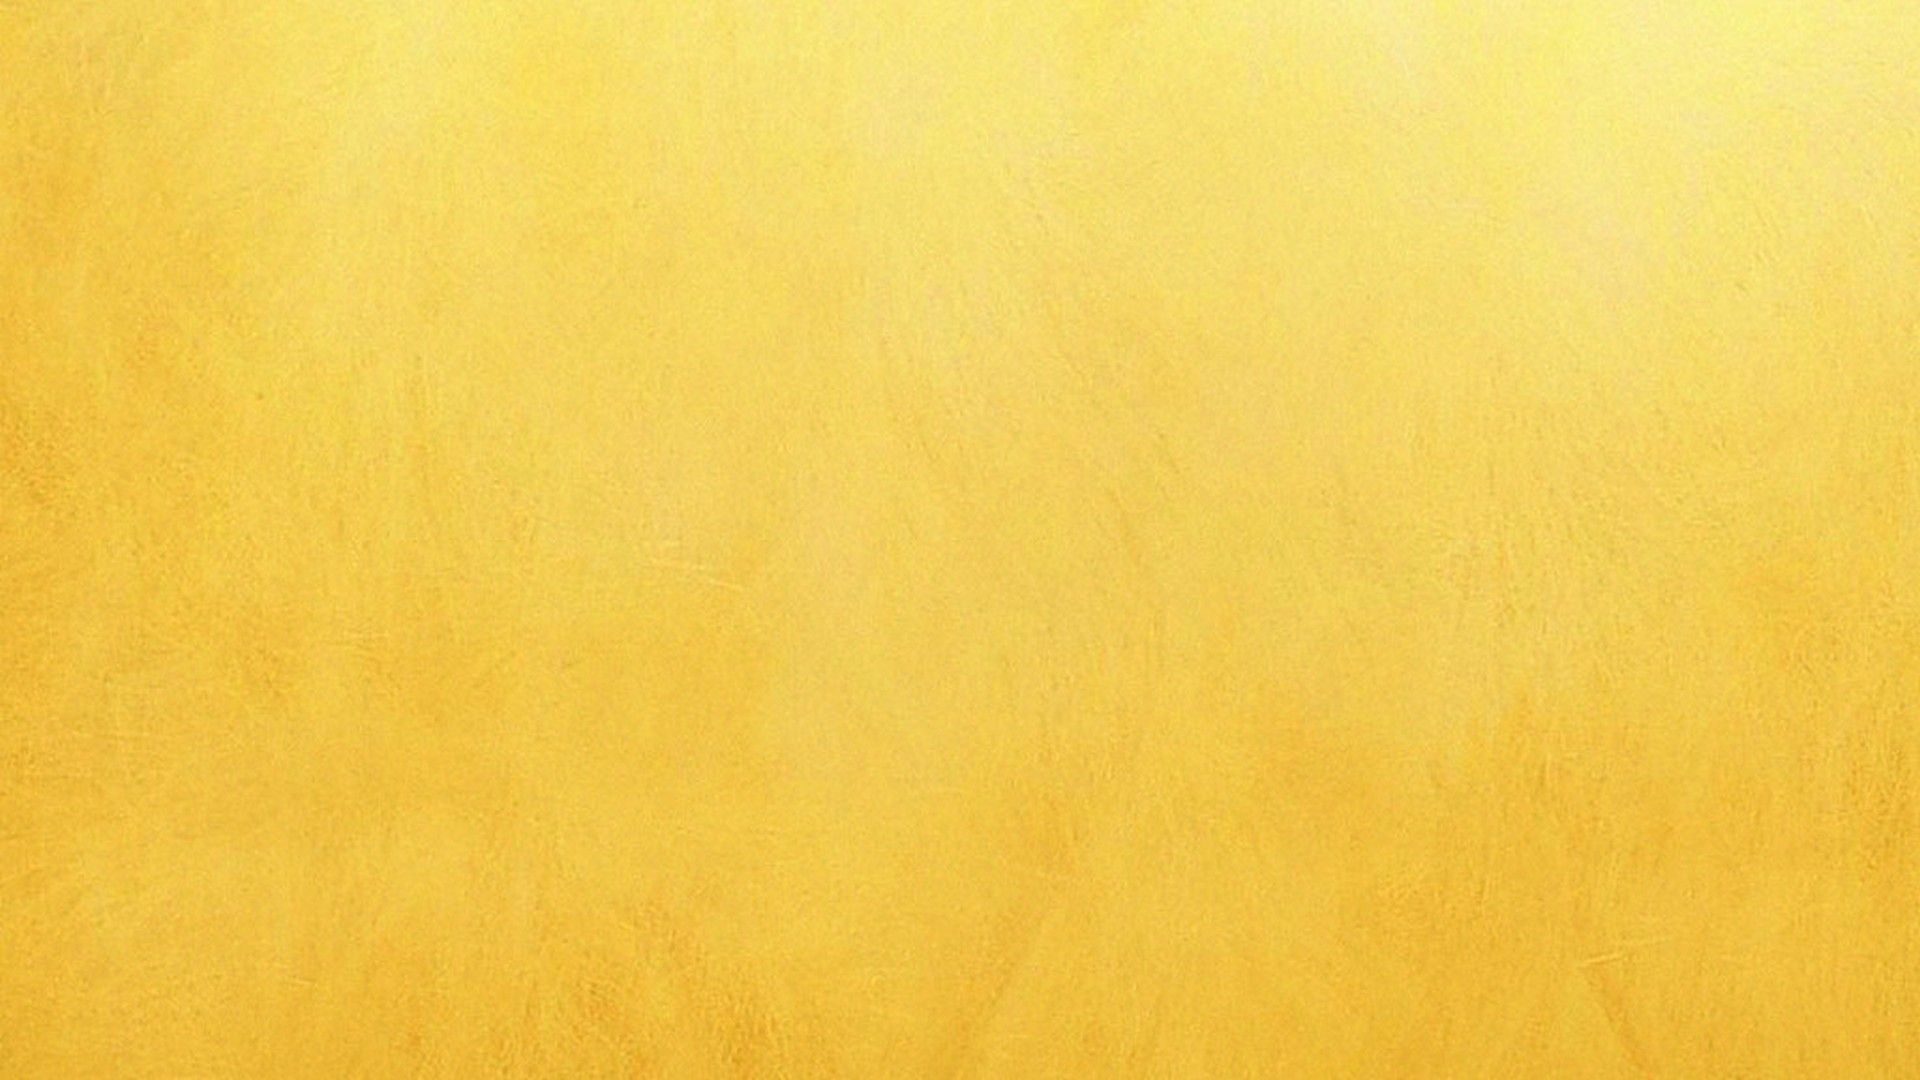 Plain Gold Background Wallpaper HD